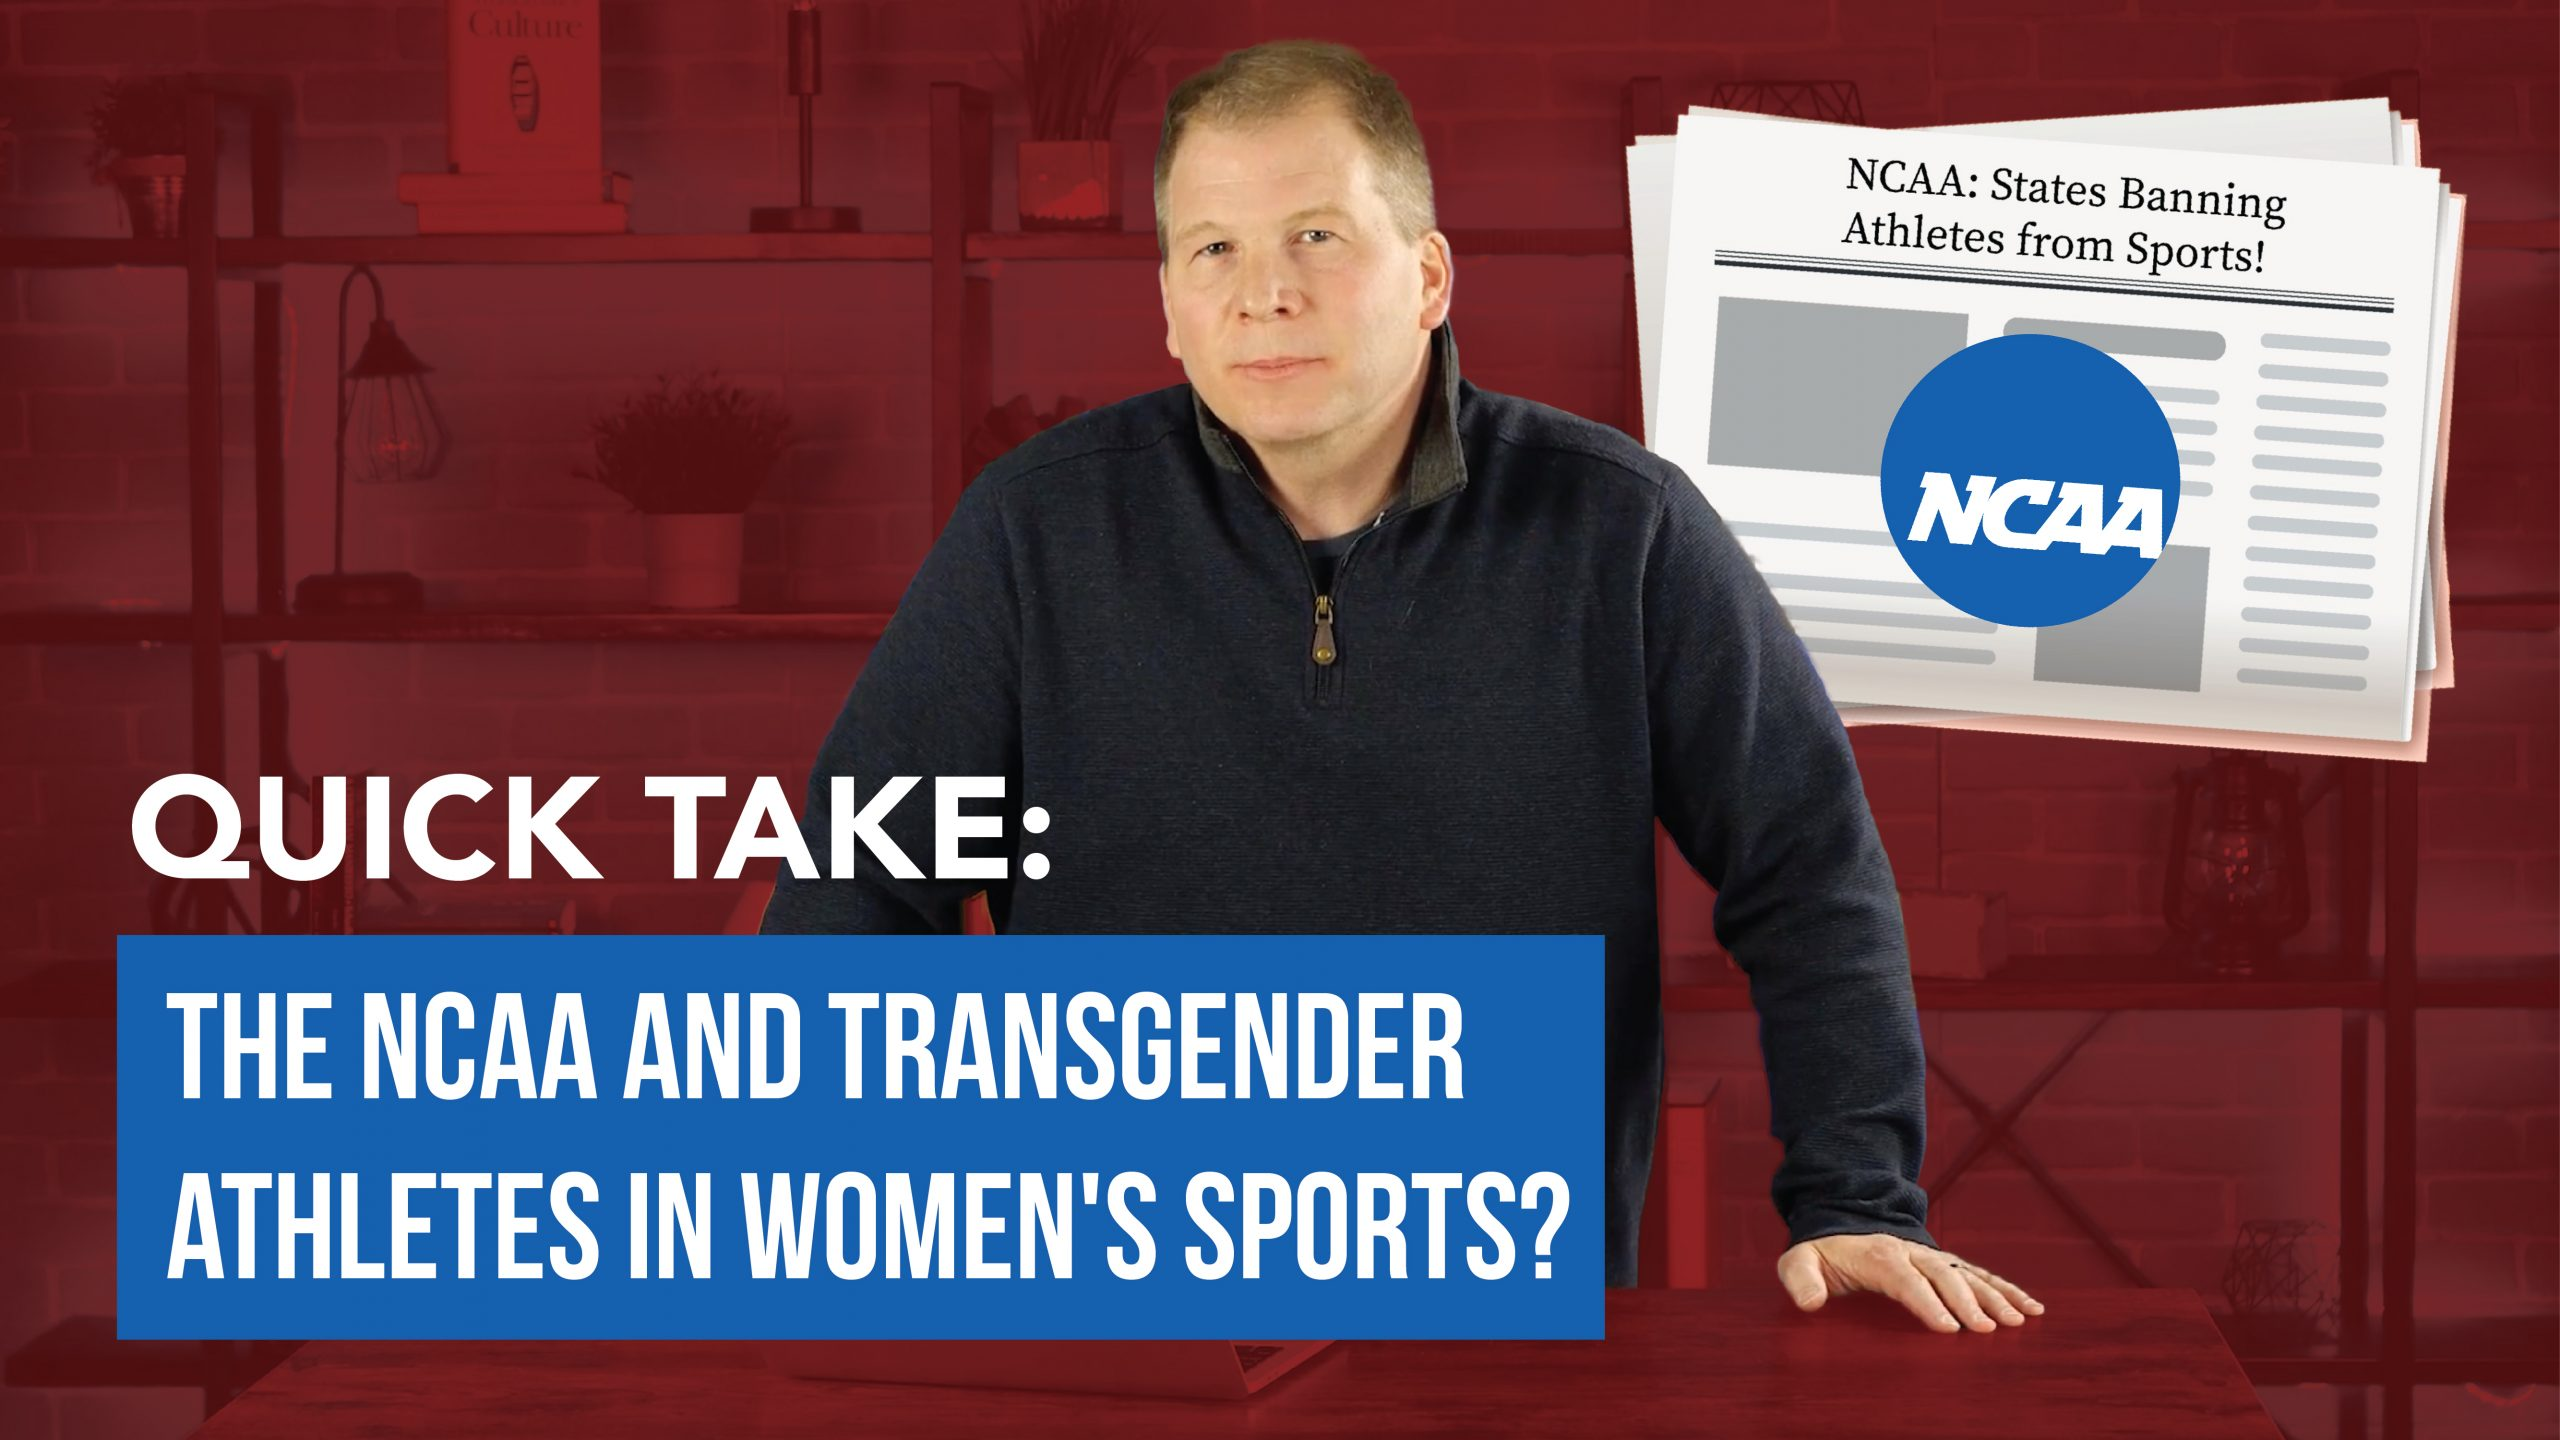 Quick Take: The NCAA and Transgender Athletes